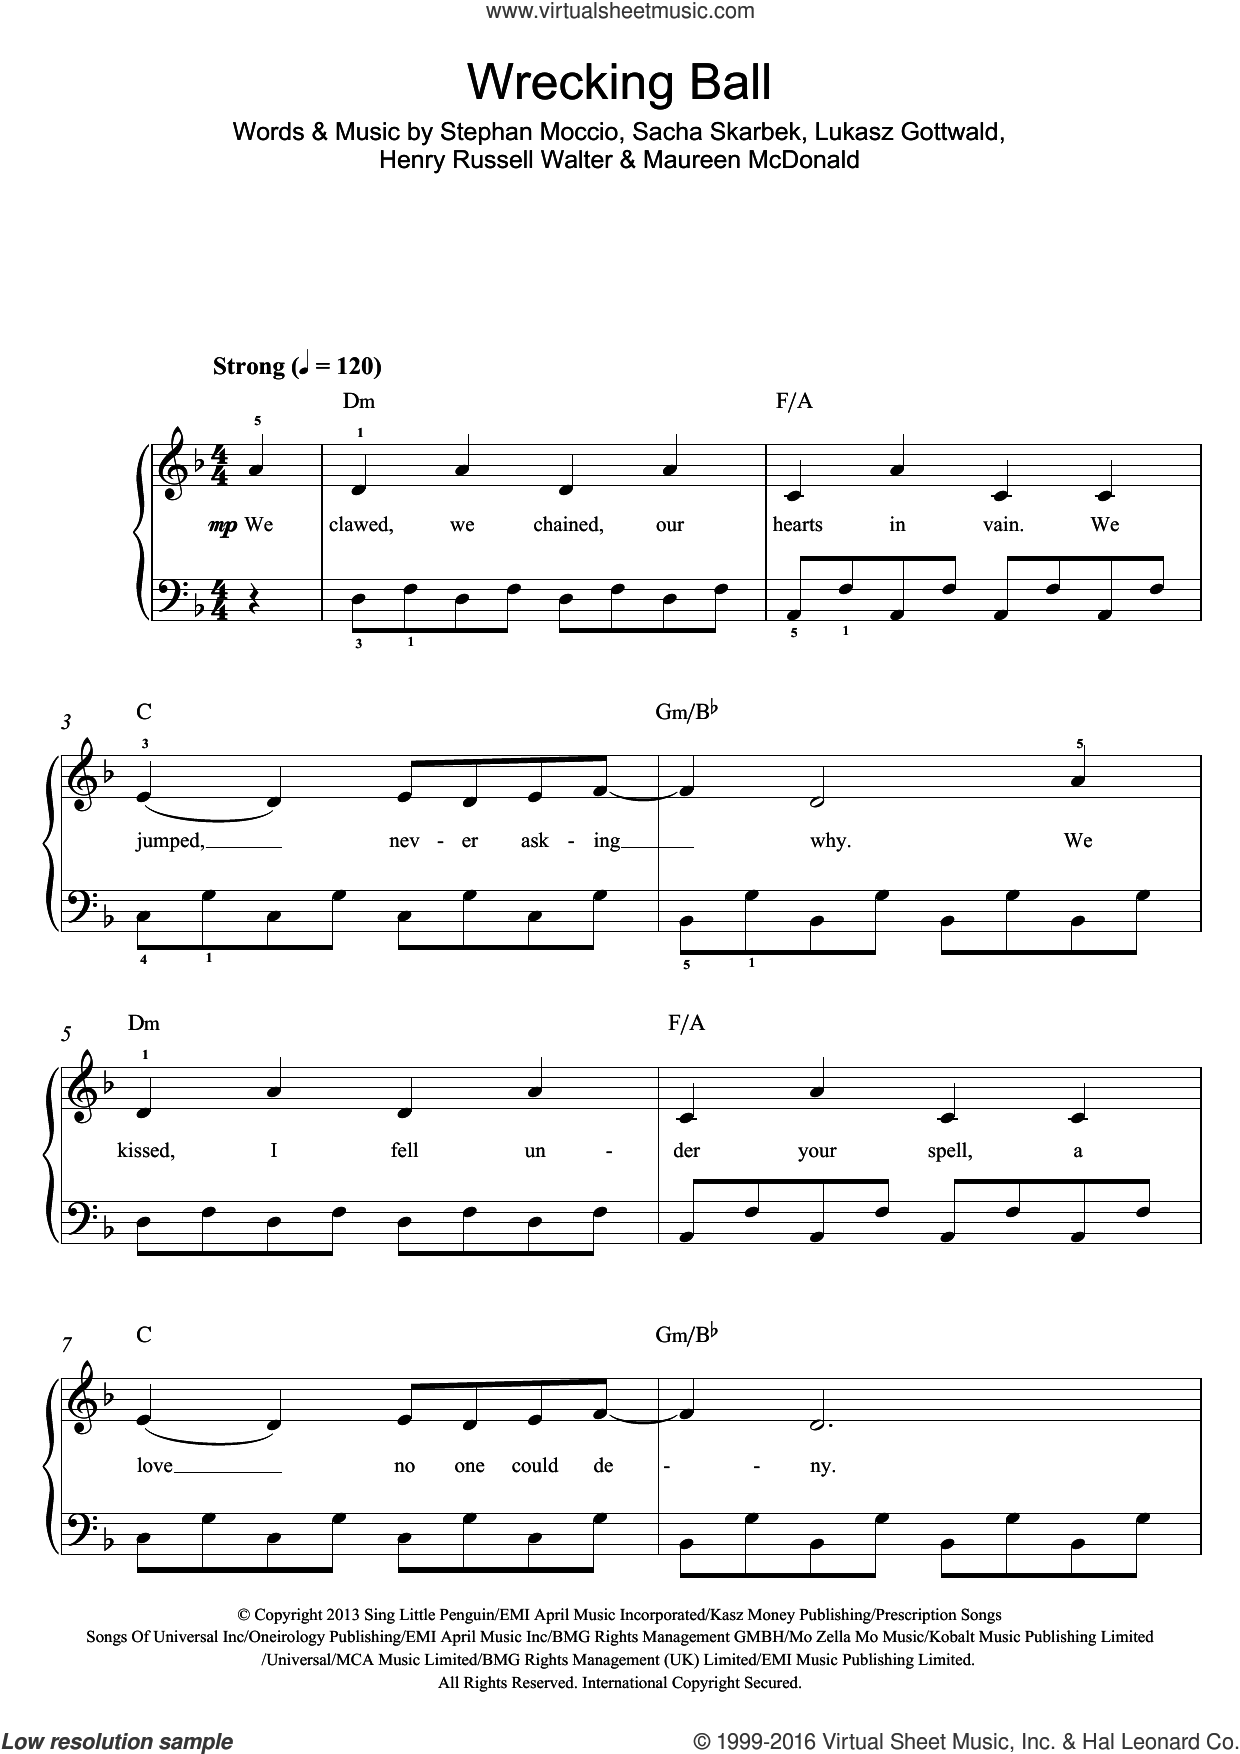 Wrecking Ball sheet music for piano solo by Miley Cyrus, Lukasz Gottwald, Maureen McDonald and Stephan Moccio, easy piano. Score Image Preview.